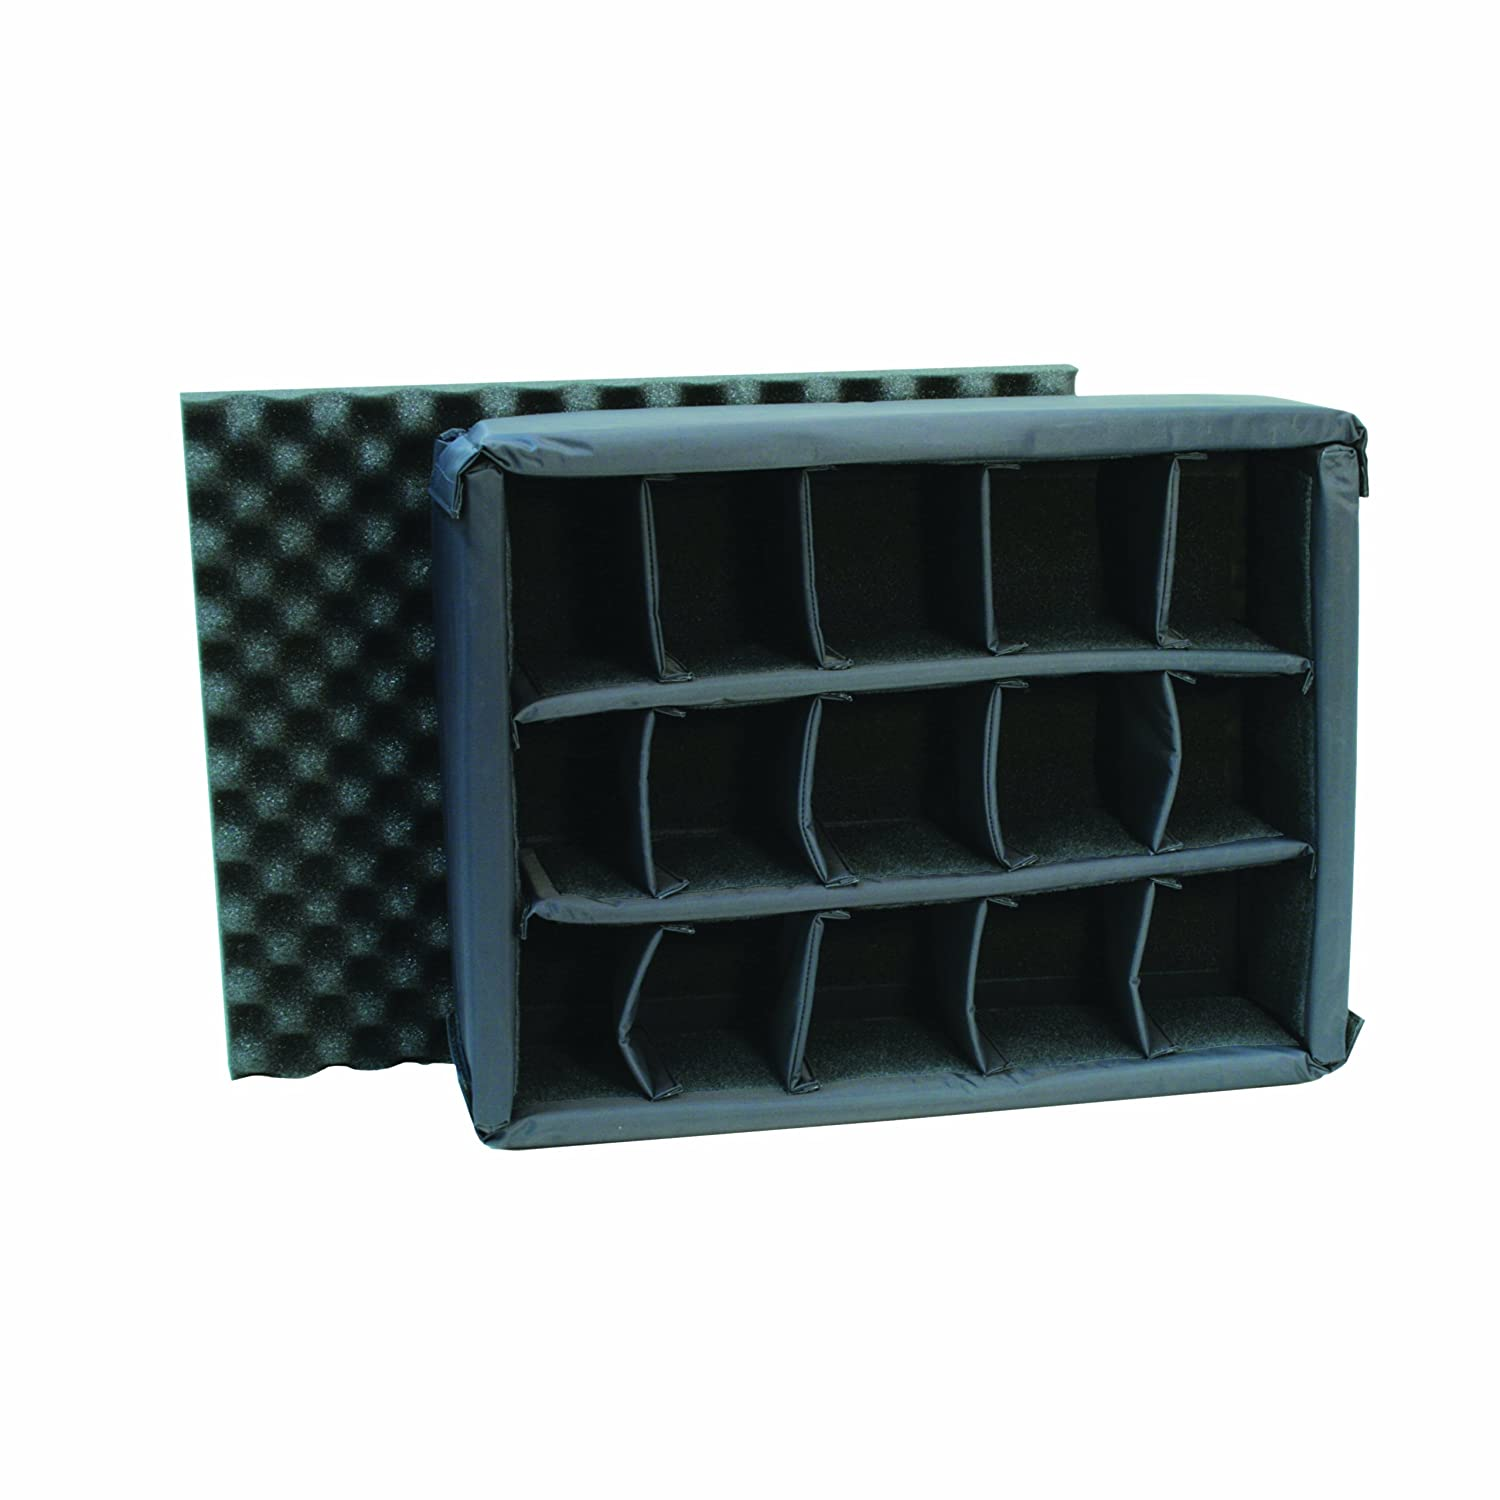 Padded Divider for 945 Nanuk Case Plasticase Inc 945-DIVI